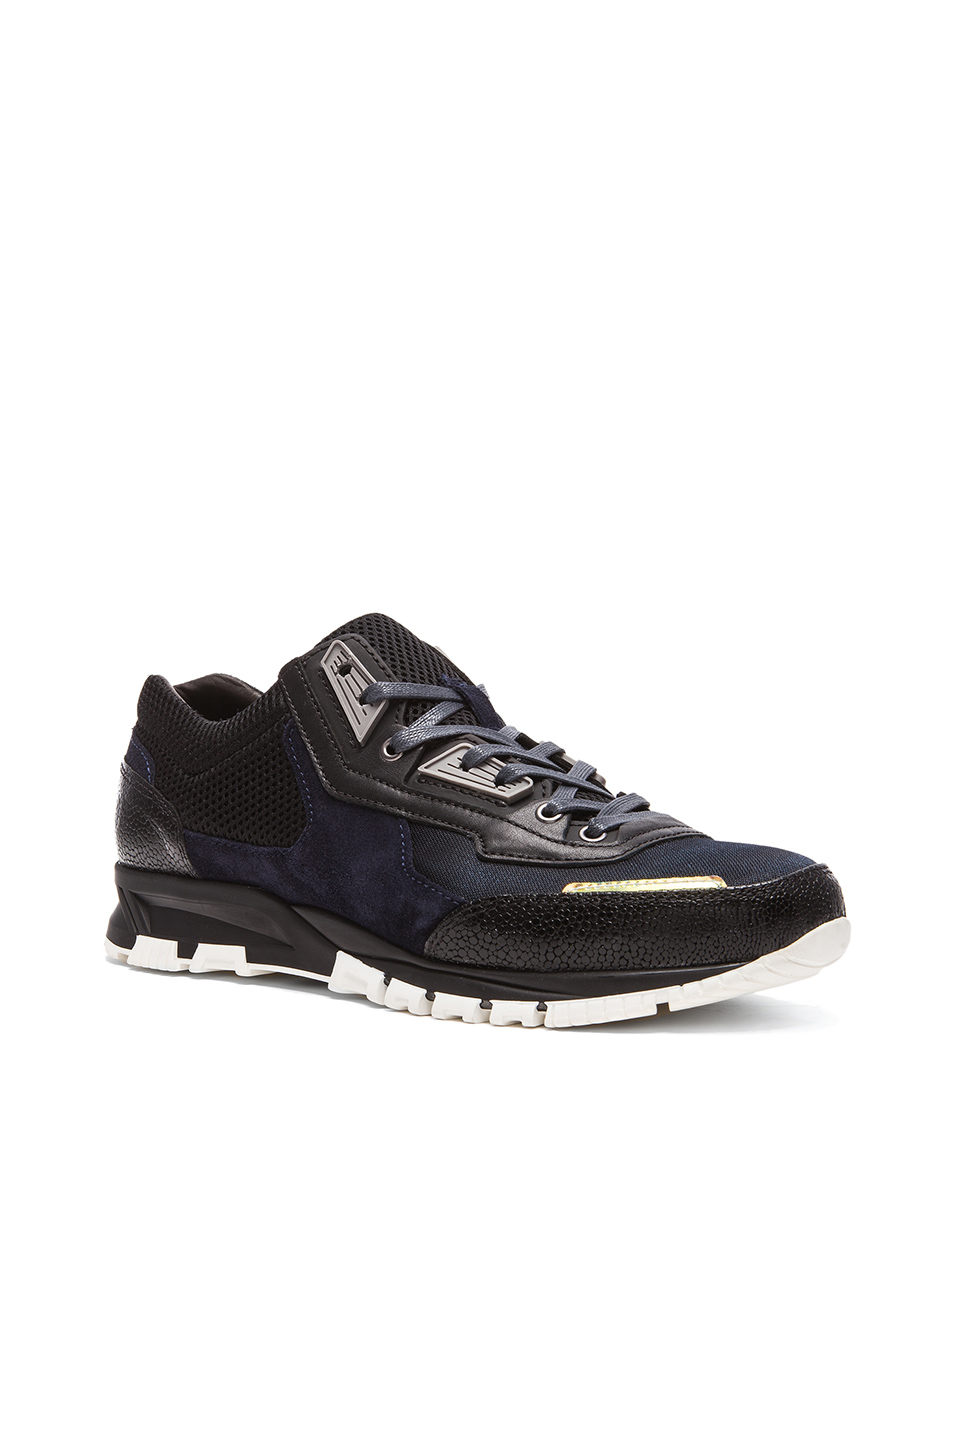 Photo of Lanvin Polyester and Sporty Mesh Running Sneaker in Blue,Metallics - shop Lanvin menswear